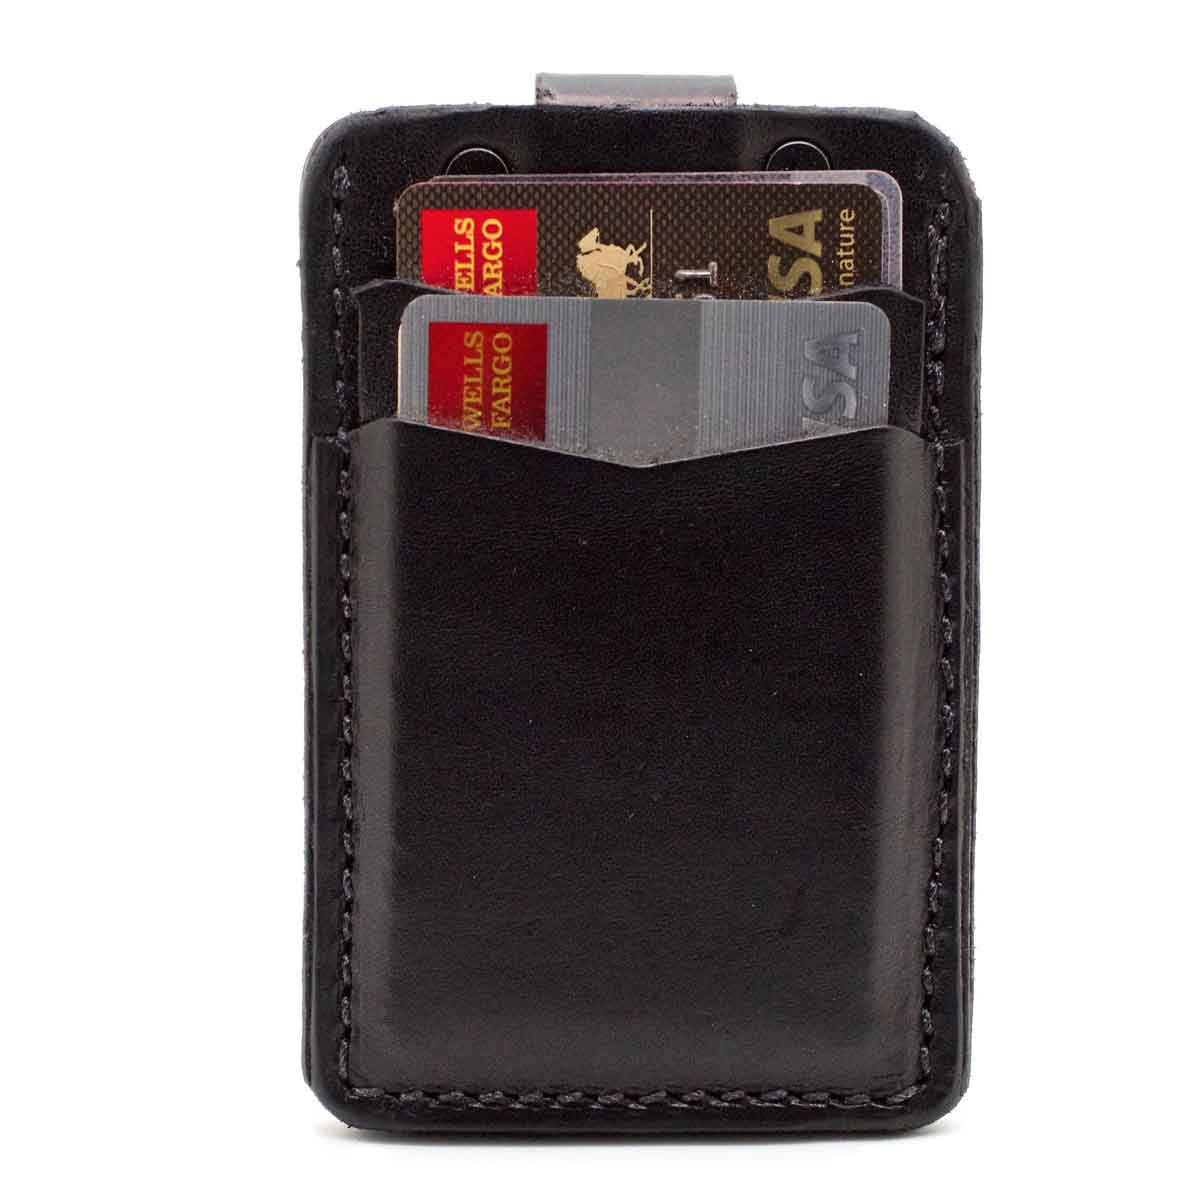 Front side of black minimalist wallet with 2 pockets showing cards